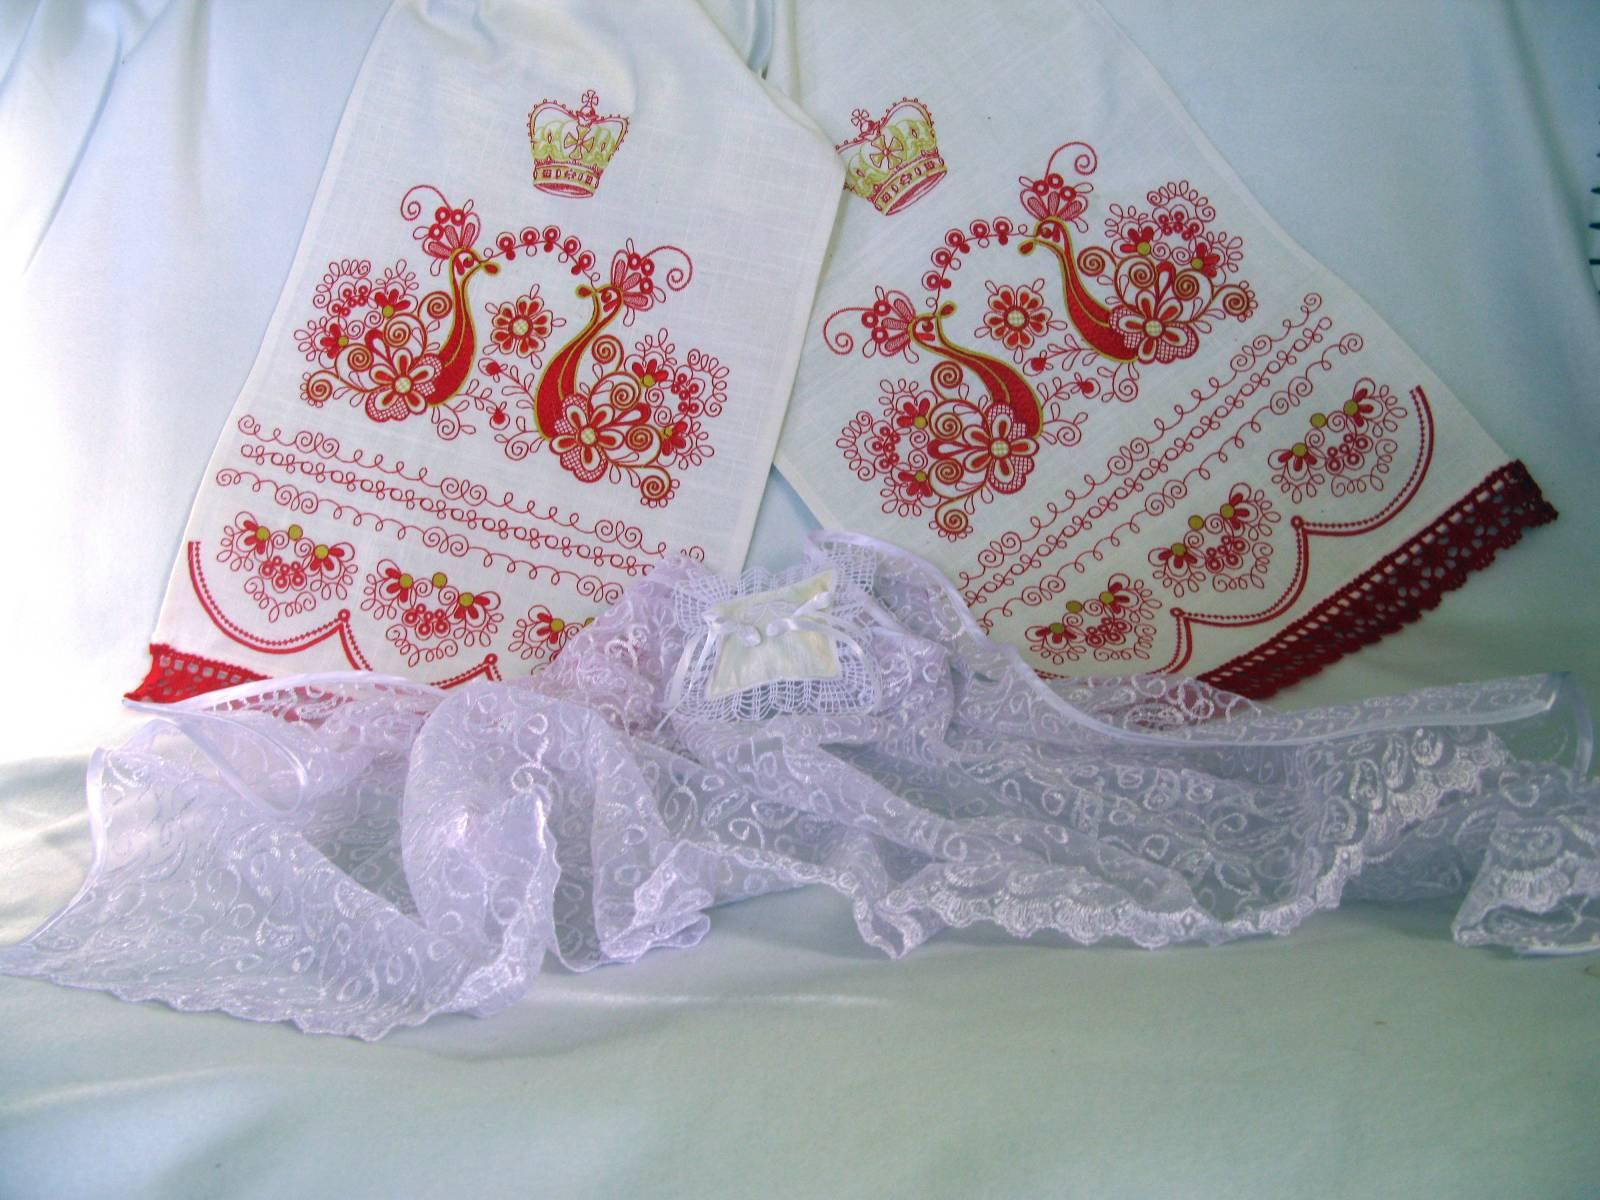 Wedding Gift Towels: Wedding Gift With Firebird Embroidered Towels